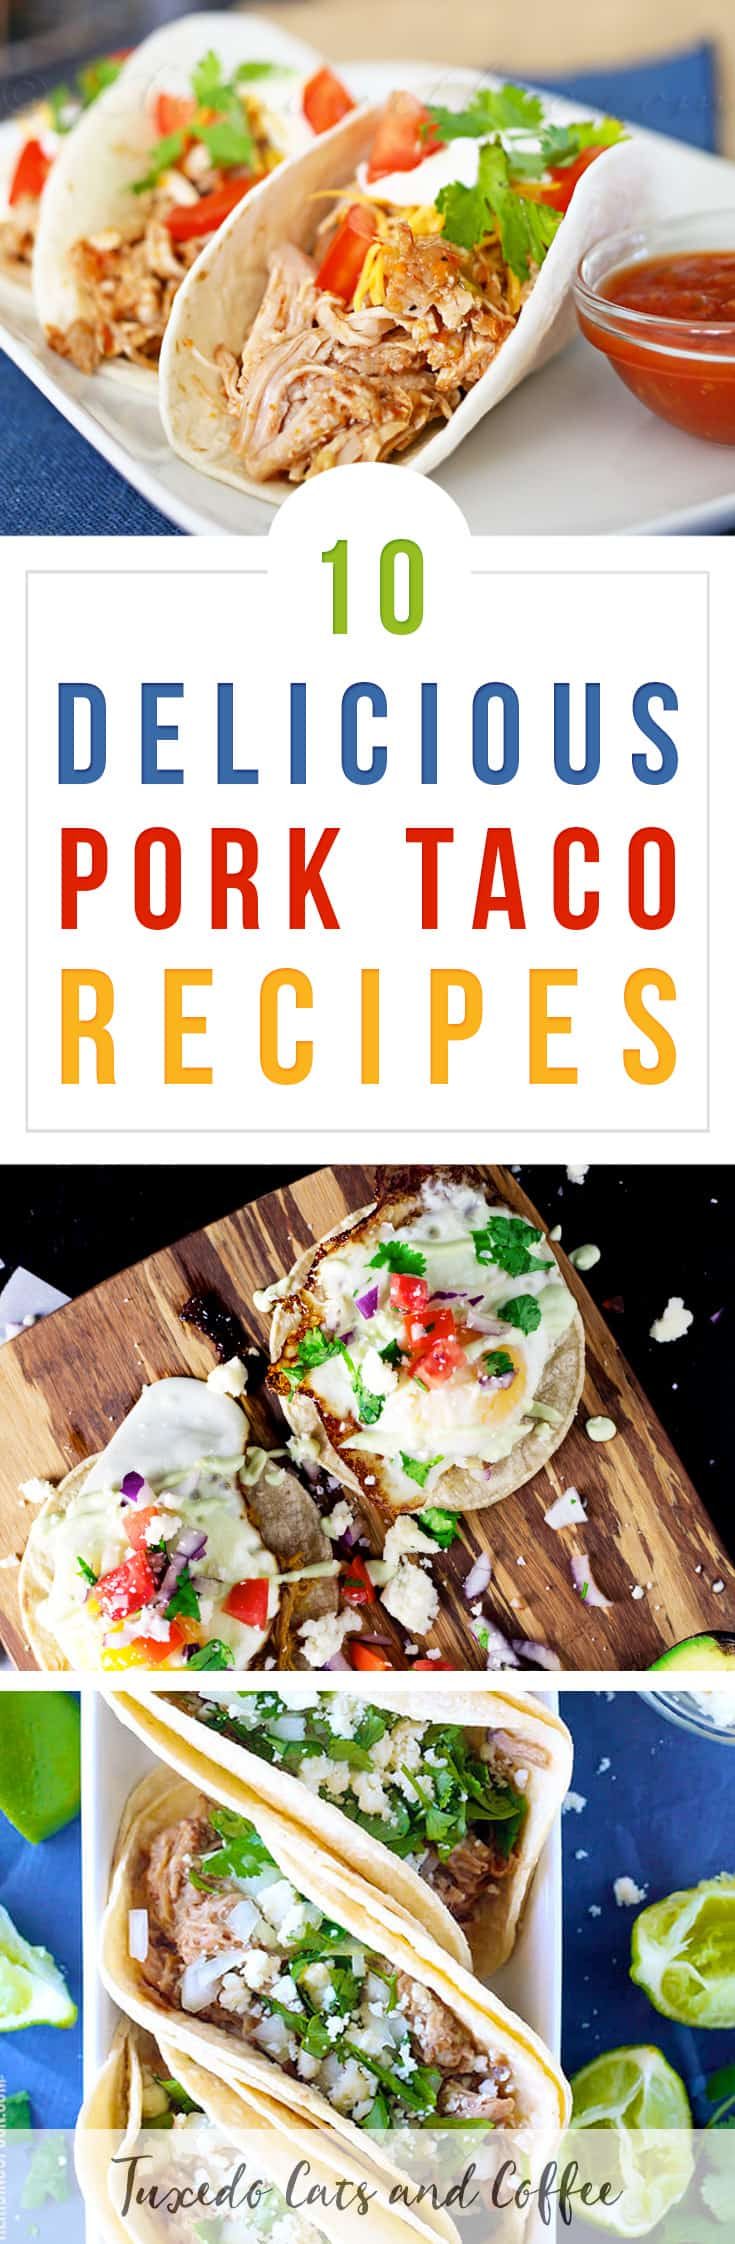 Are you looking for a delicious Mexican-inspired taco recipe? Here are 10 delicious pork taco recipes that are easy to prepare and have fillings like pork carnitas, pulled pork, and slow cooker tomatillo pork. You won't find any hard shell tacos here!